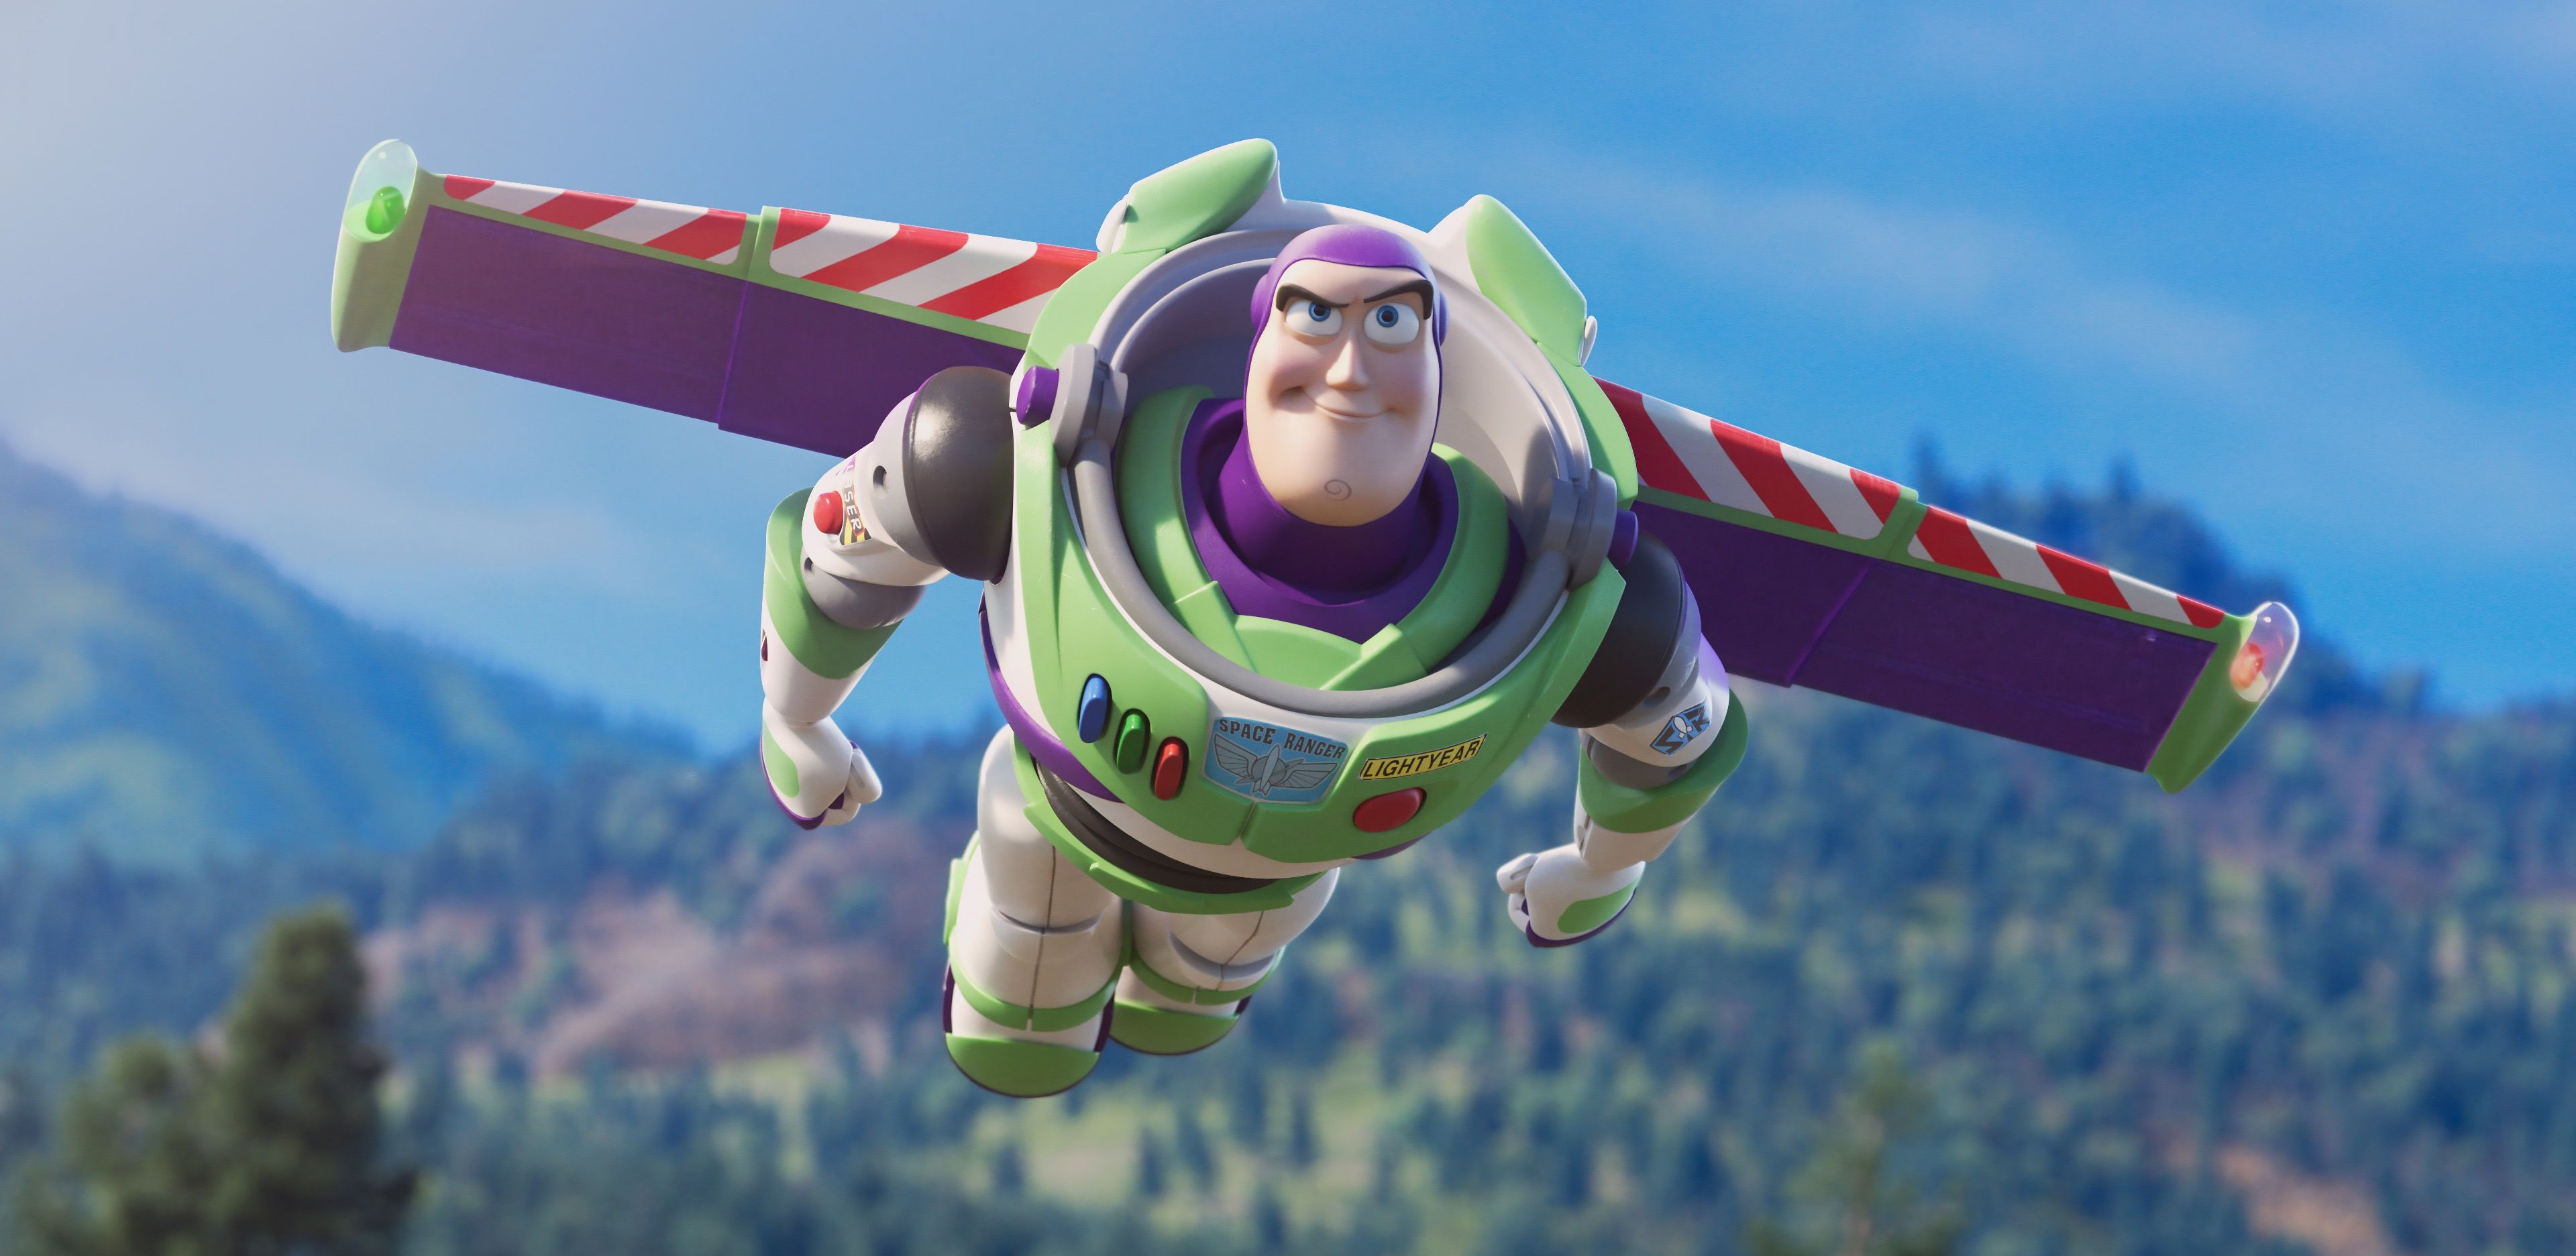 'You Are a Sad, Strange Little Man': Toy Story's Most Meme-Able Line Was Ad-Libbed